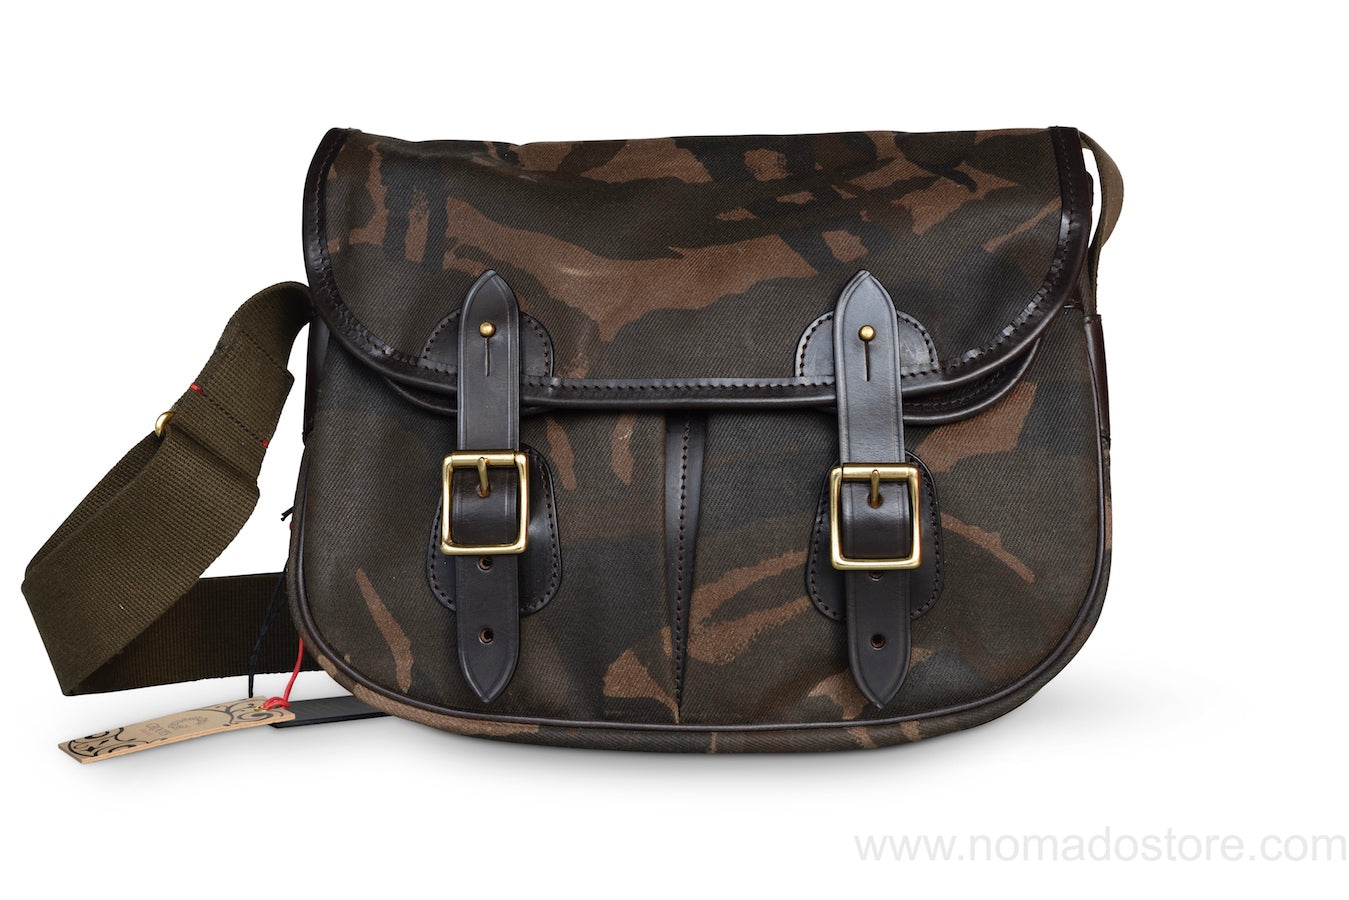 CROOTS DALBY CARRYALL BAG (M) WAXED CAMOUFLAGE - NOMADO Store